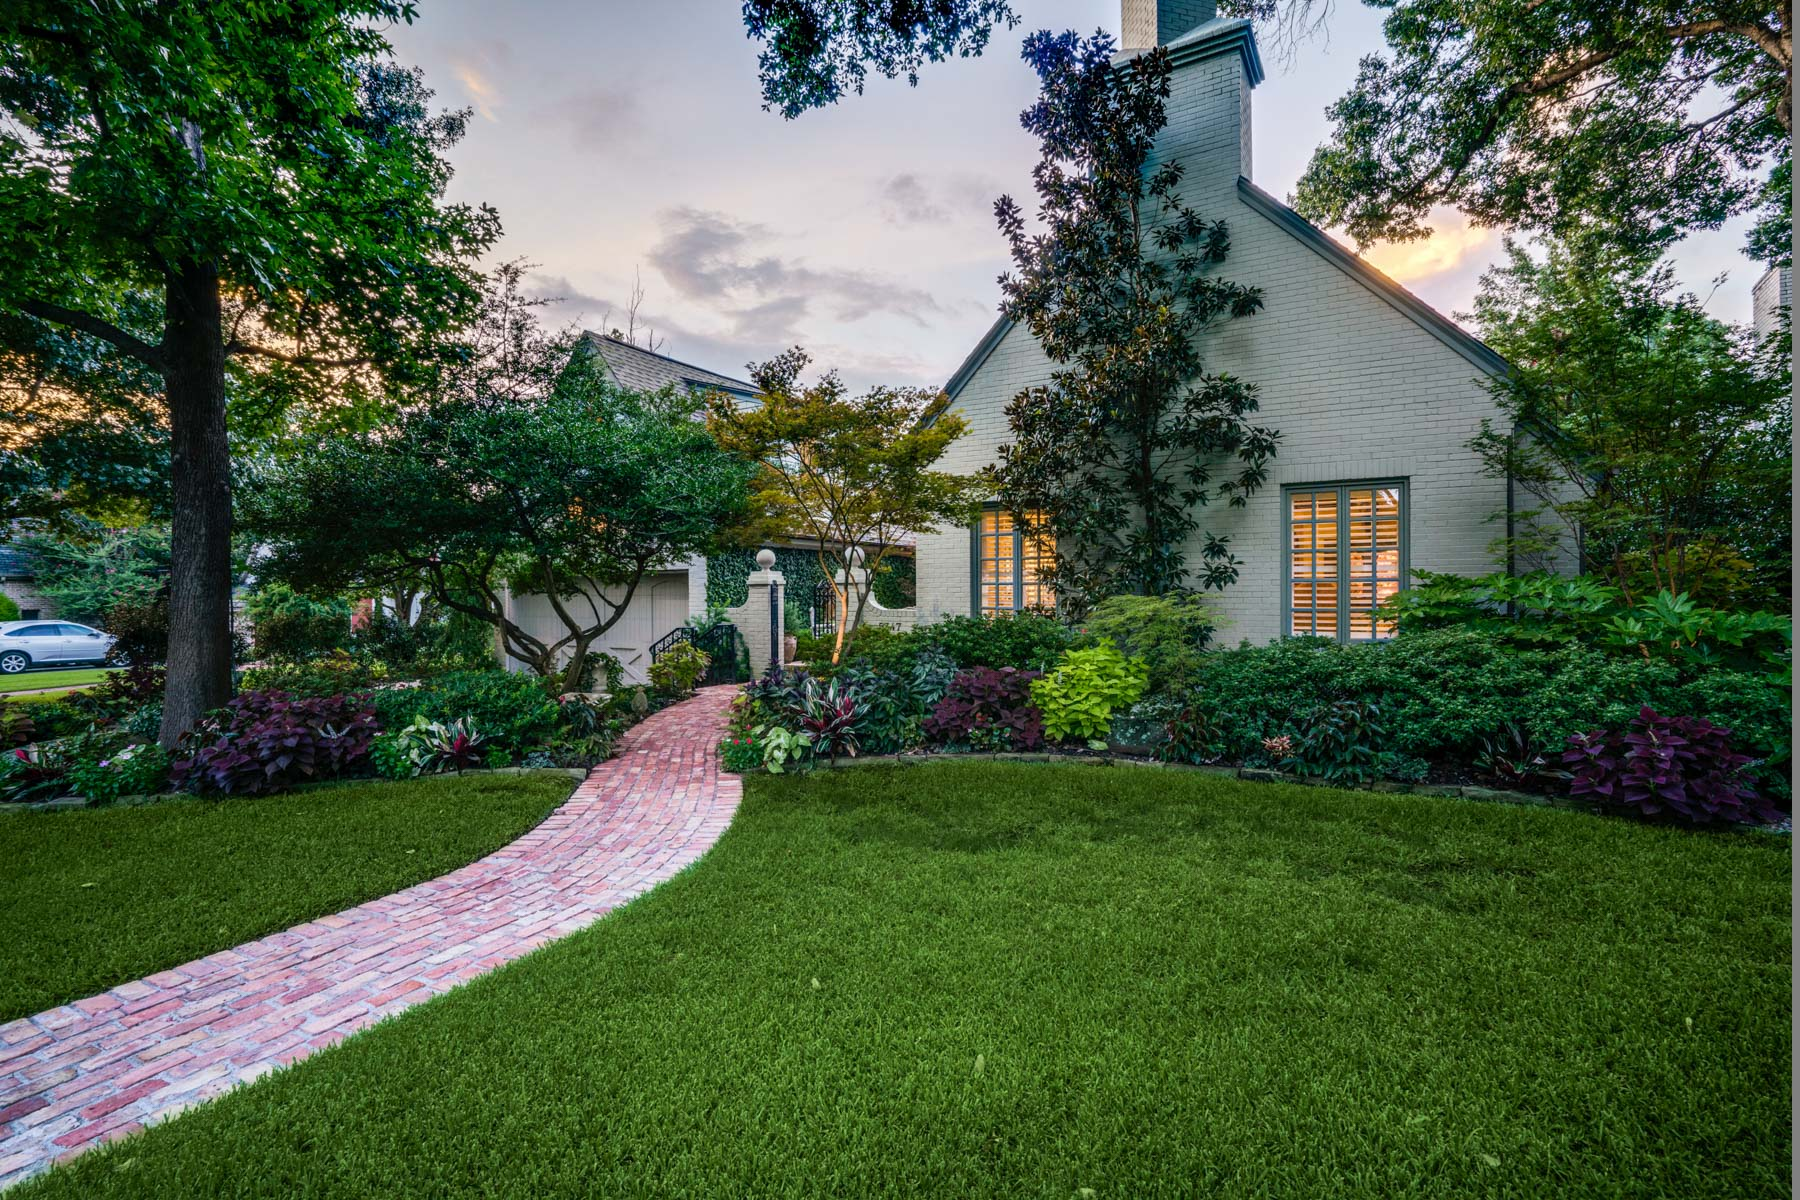 Single Family Home for Sale at Romantic Traditional on the Greenbelt 5347 Montrose Dr Dallas, Texas, 75209 United States